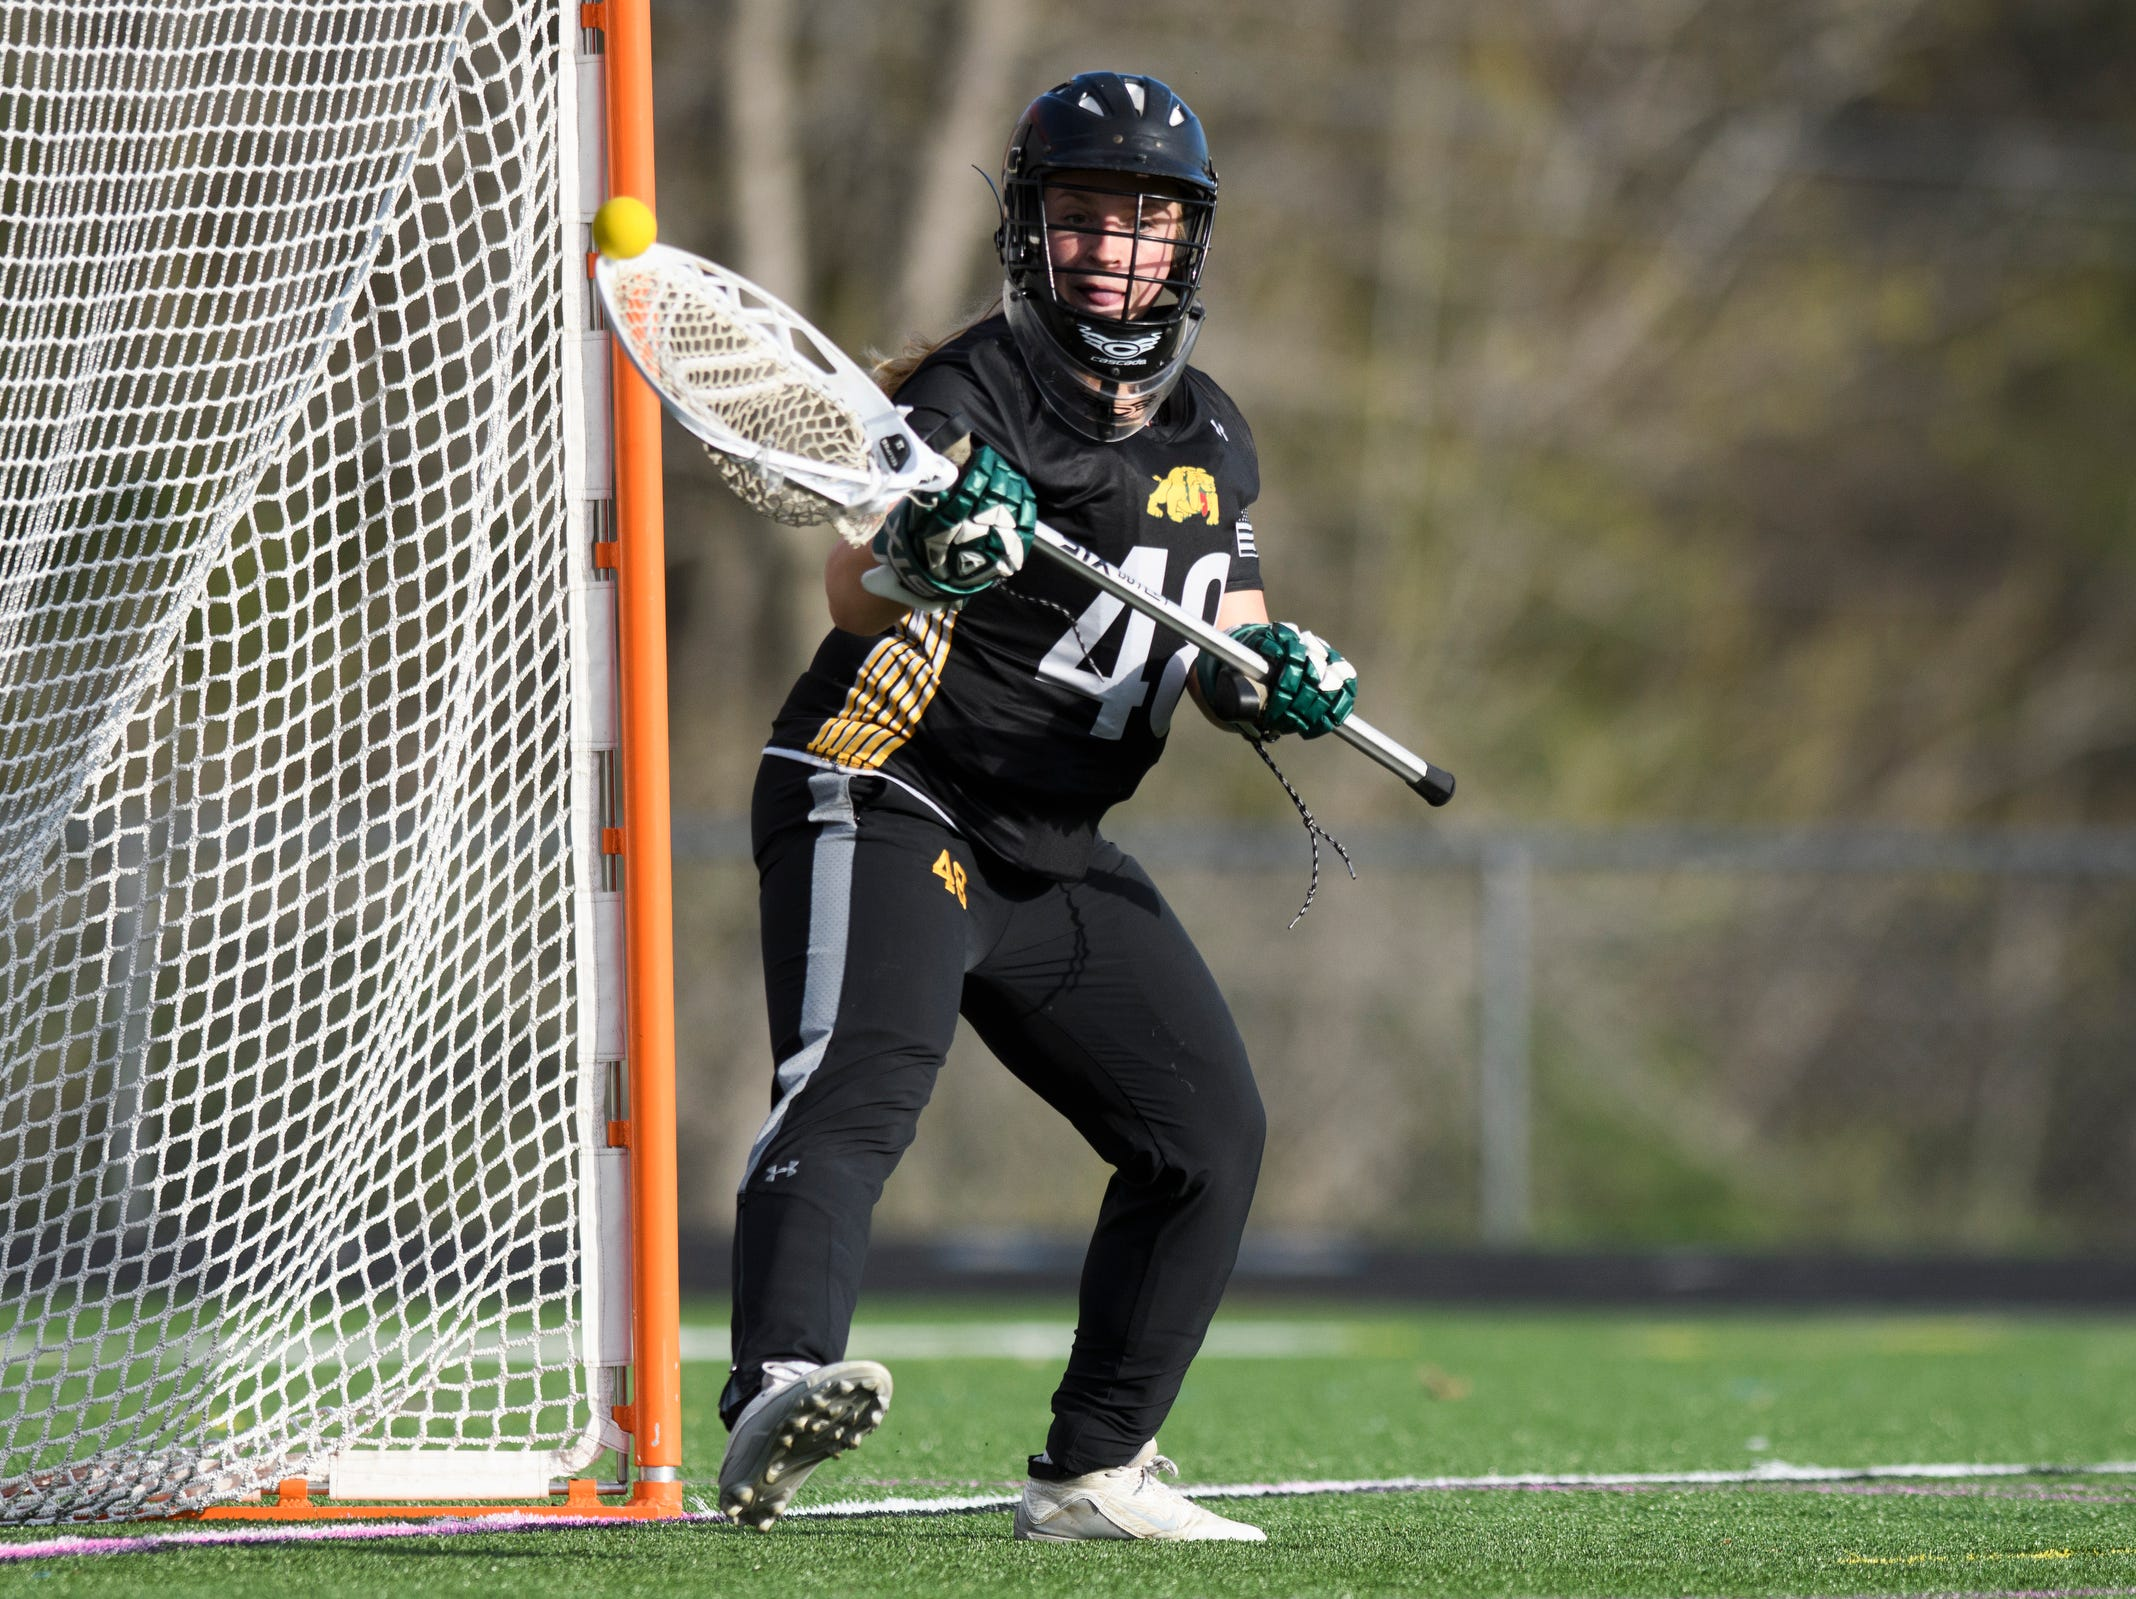 Burr and Burton goalie Cassie Pearce (48) makes a save during the high school girls lacrosse game between Burr and Burton Bulldogs and the South Burlington Wolves at Munson Field on Monday afternoon May 6, 2019 in South Burlington, Vermont.